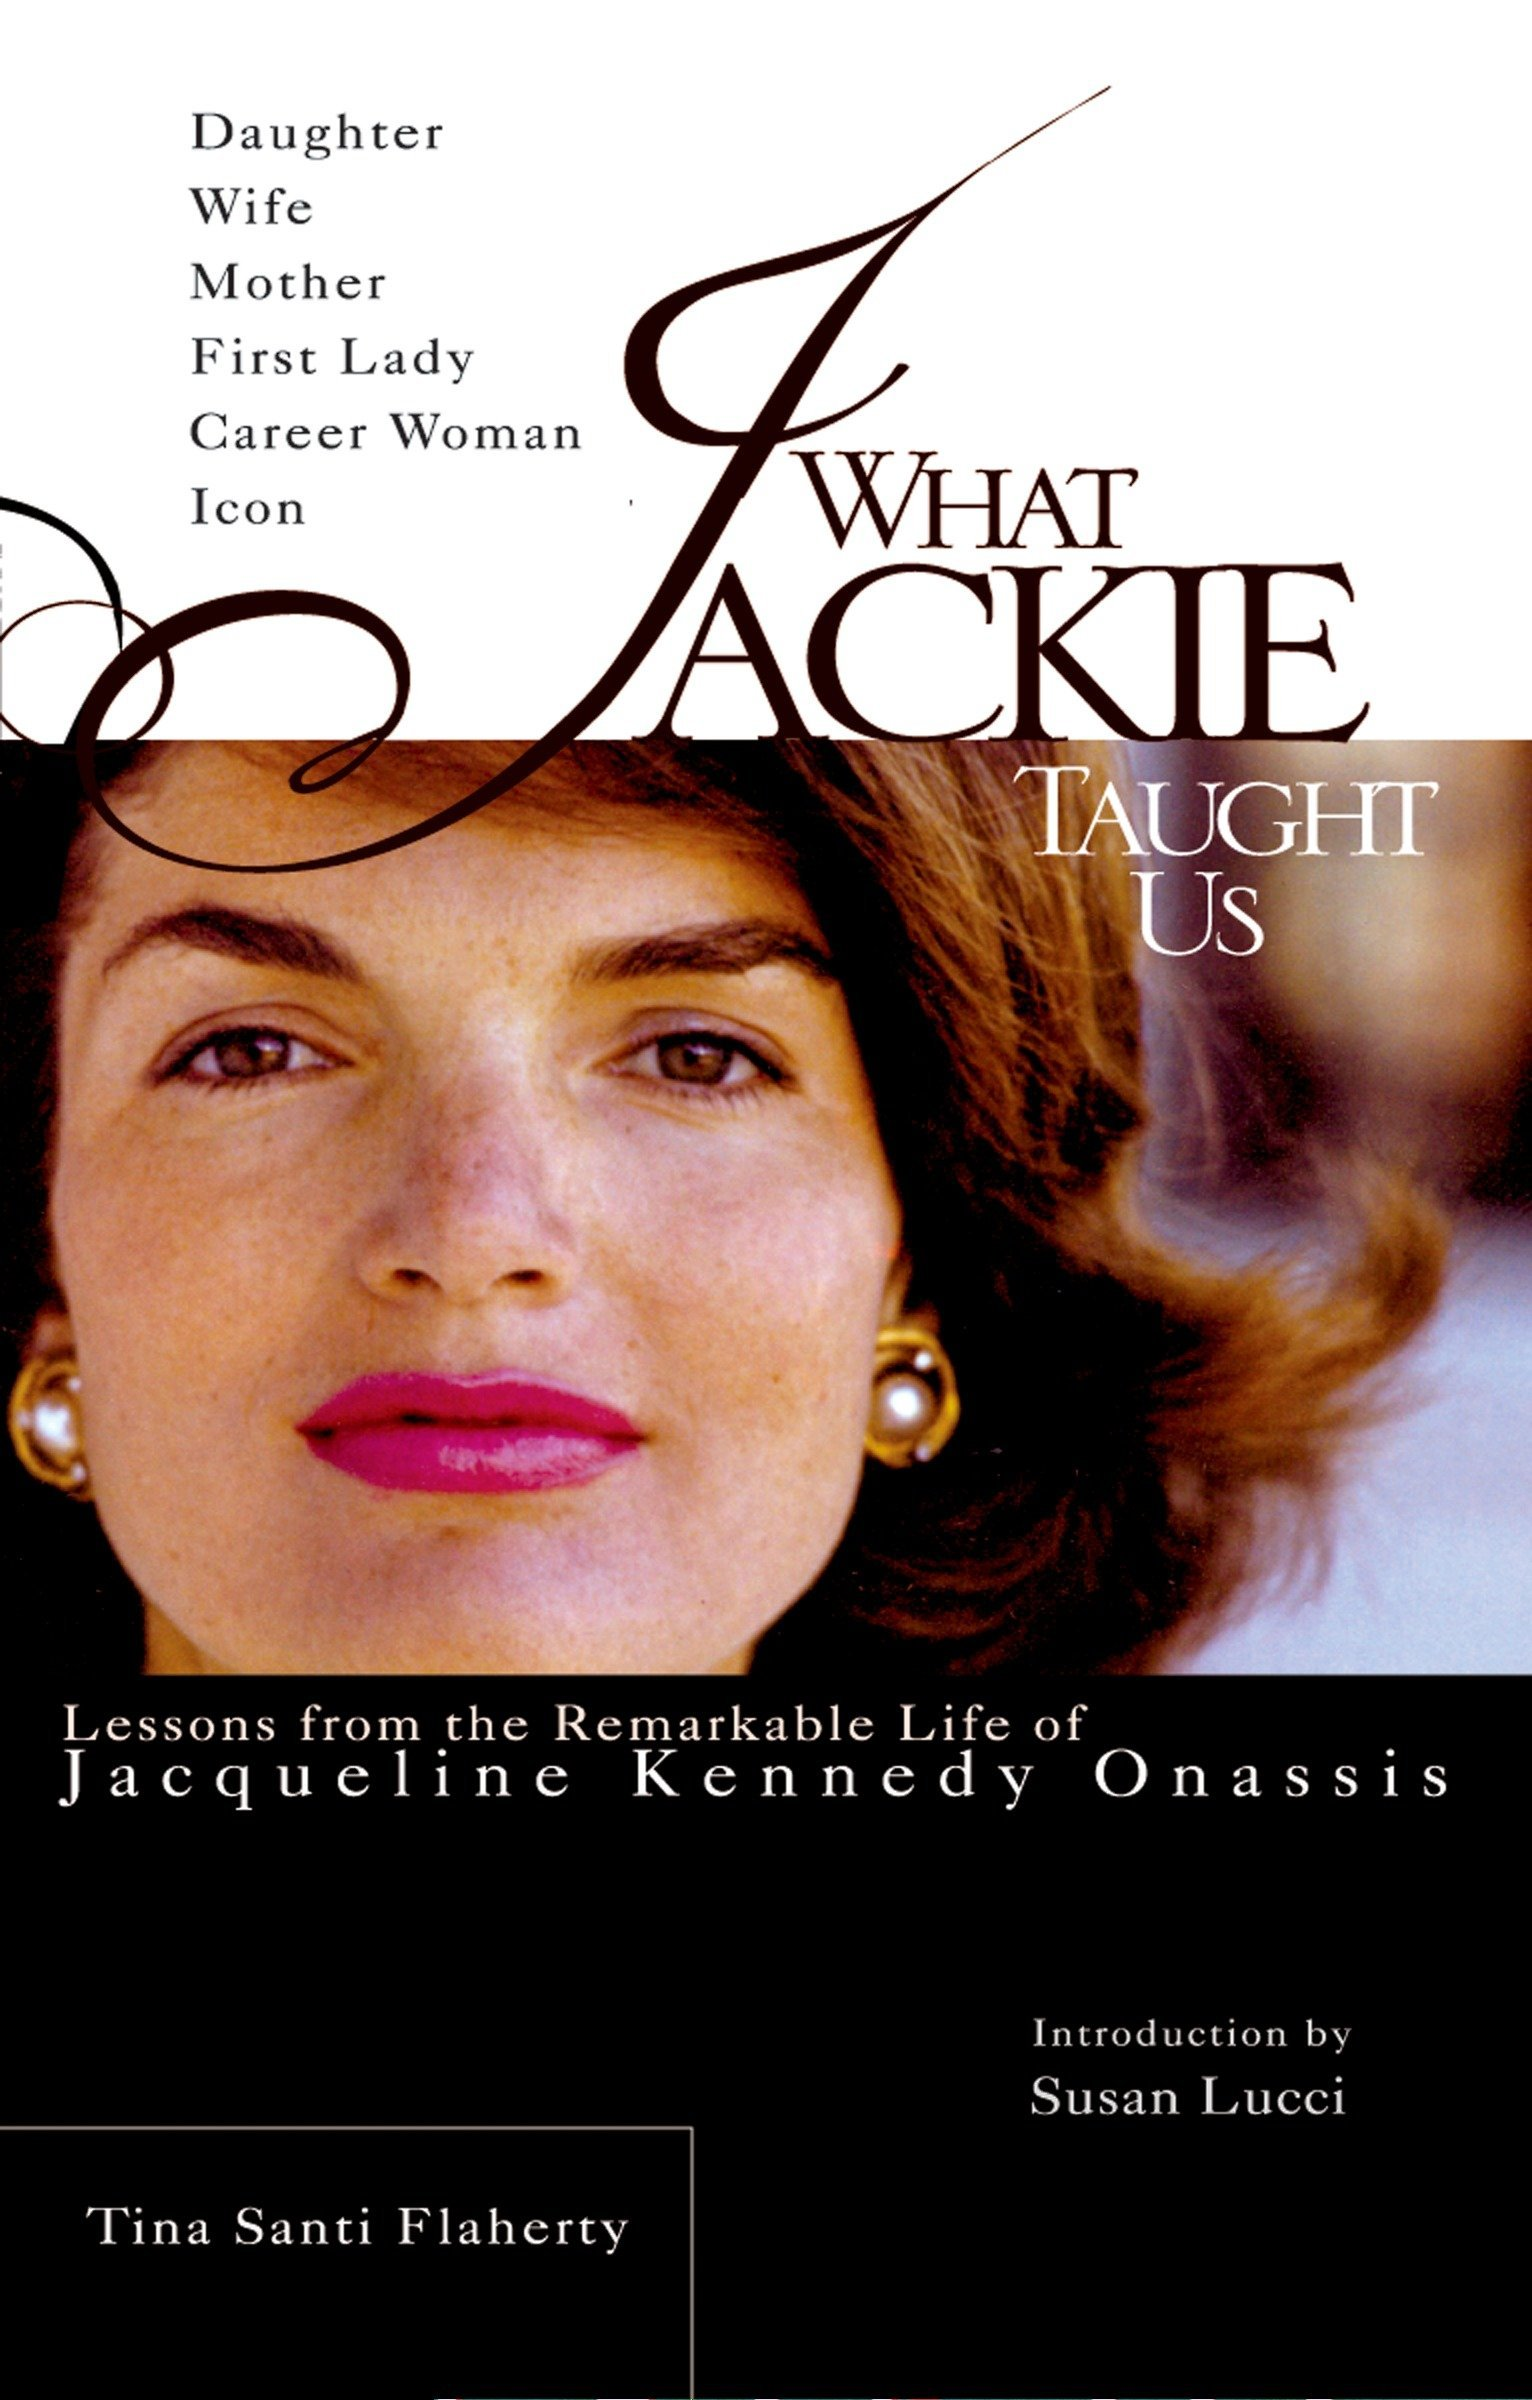 Download What Jackie Taught Us: Lessons from the Remarkable Life of Jacqueline Kennedy Onassis PDF